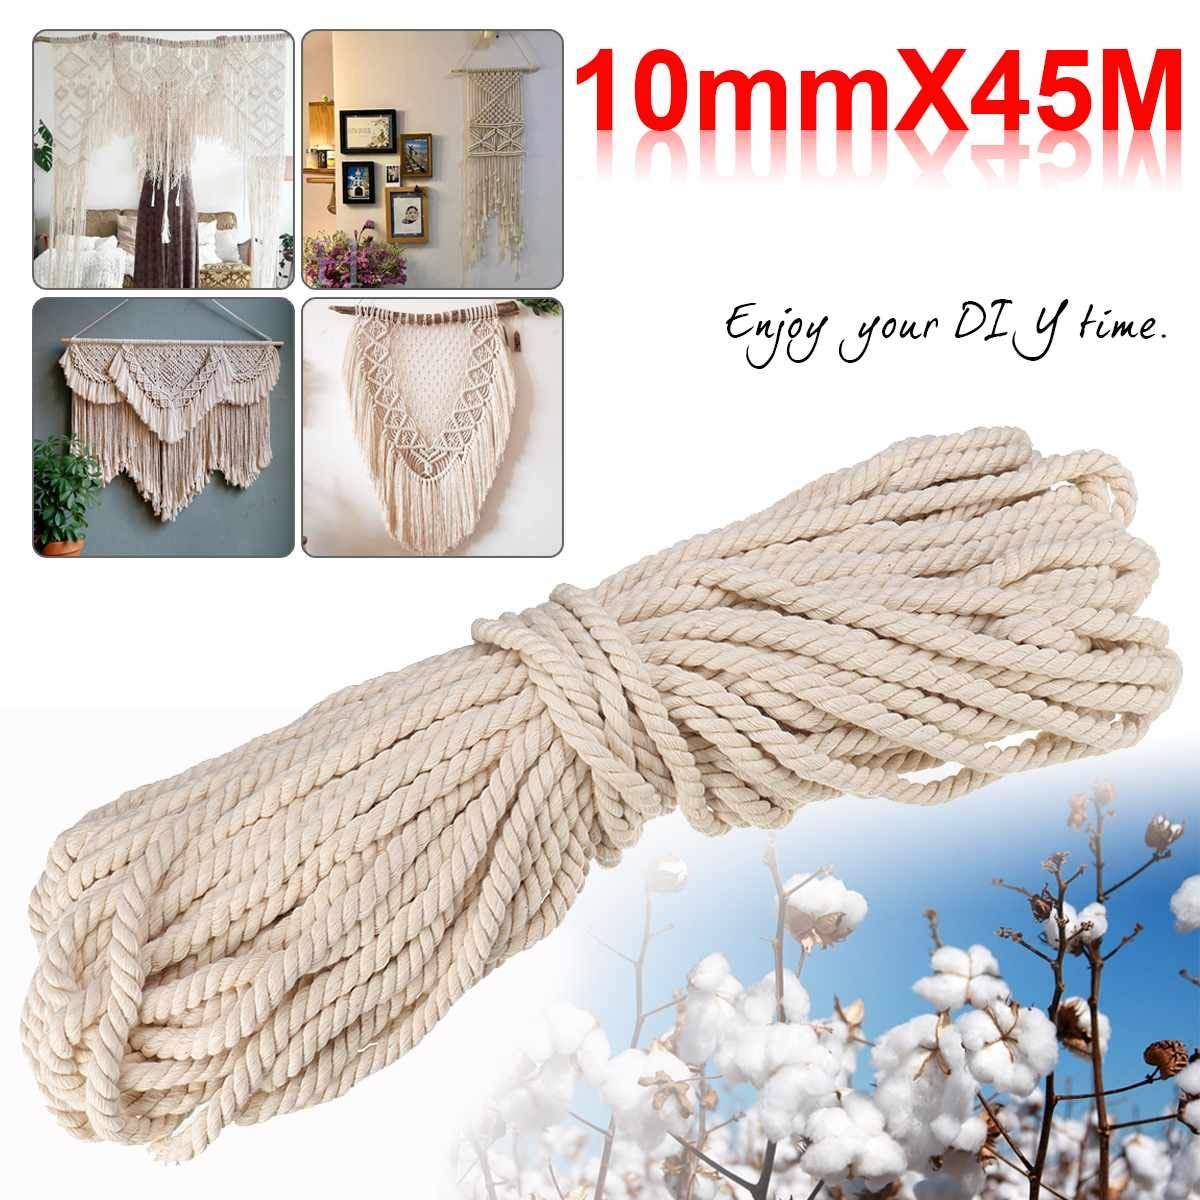 FINCOS Macrame Rope Natural Beige 10mm 45m Twisted Cord for Handmade Enthusiasts for Artisan DIY Hand Craft Cords Pure Cotton by FINCOS (Image #5)